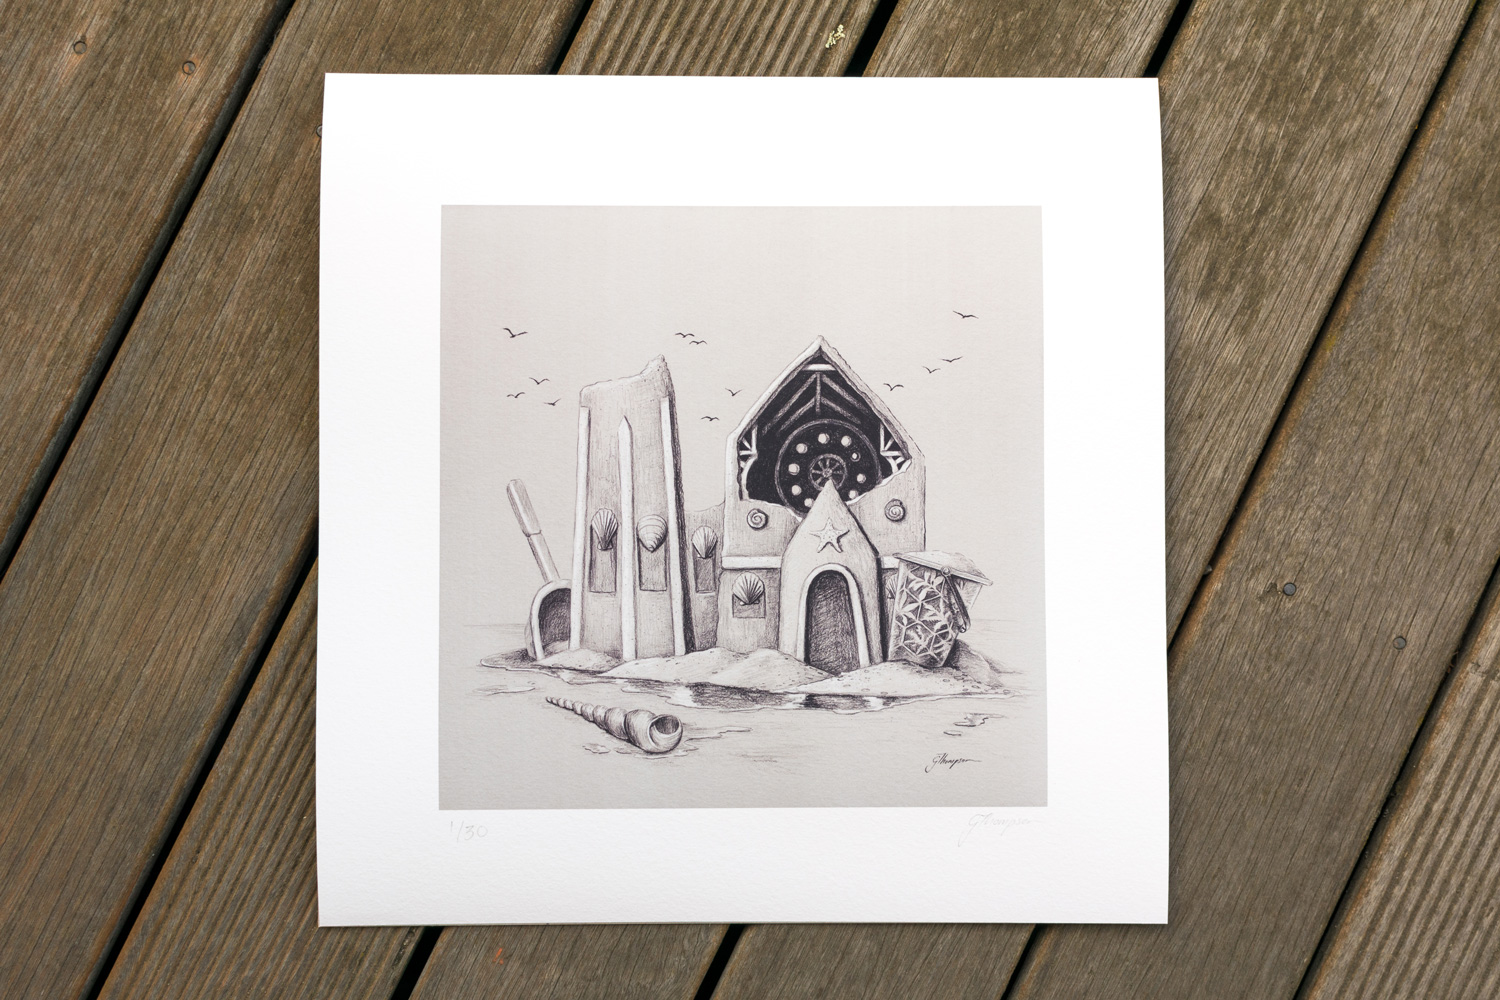 Limited edition giclee print on 100% cotton rag paper. 330mm x 345mm.